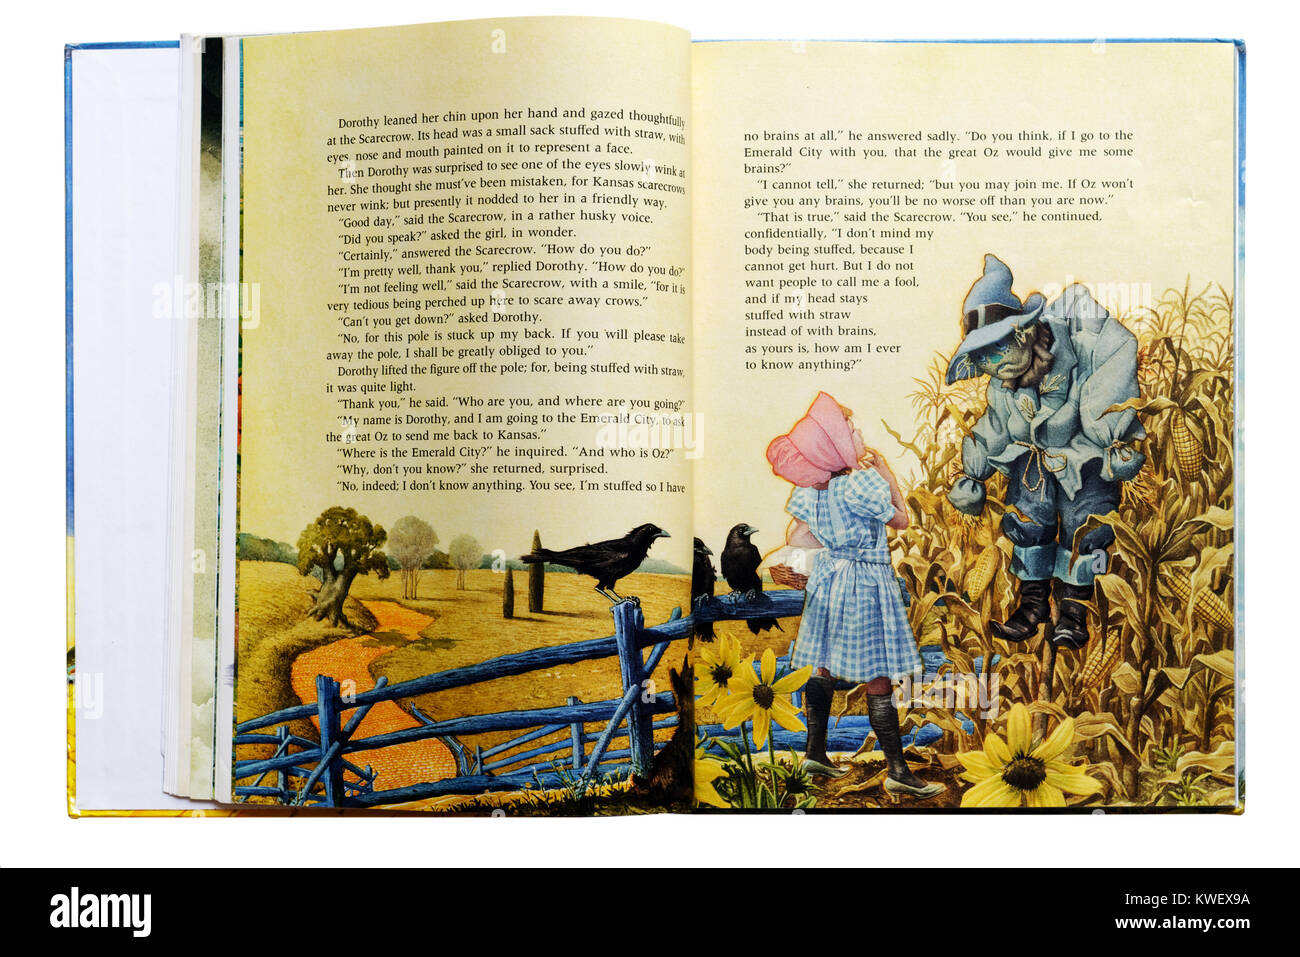 Dorothy meets the Scarecrow in an Illustrated book of The Wizard of Oz - Stock Image